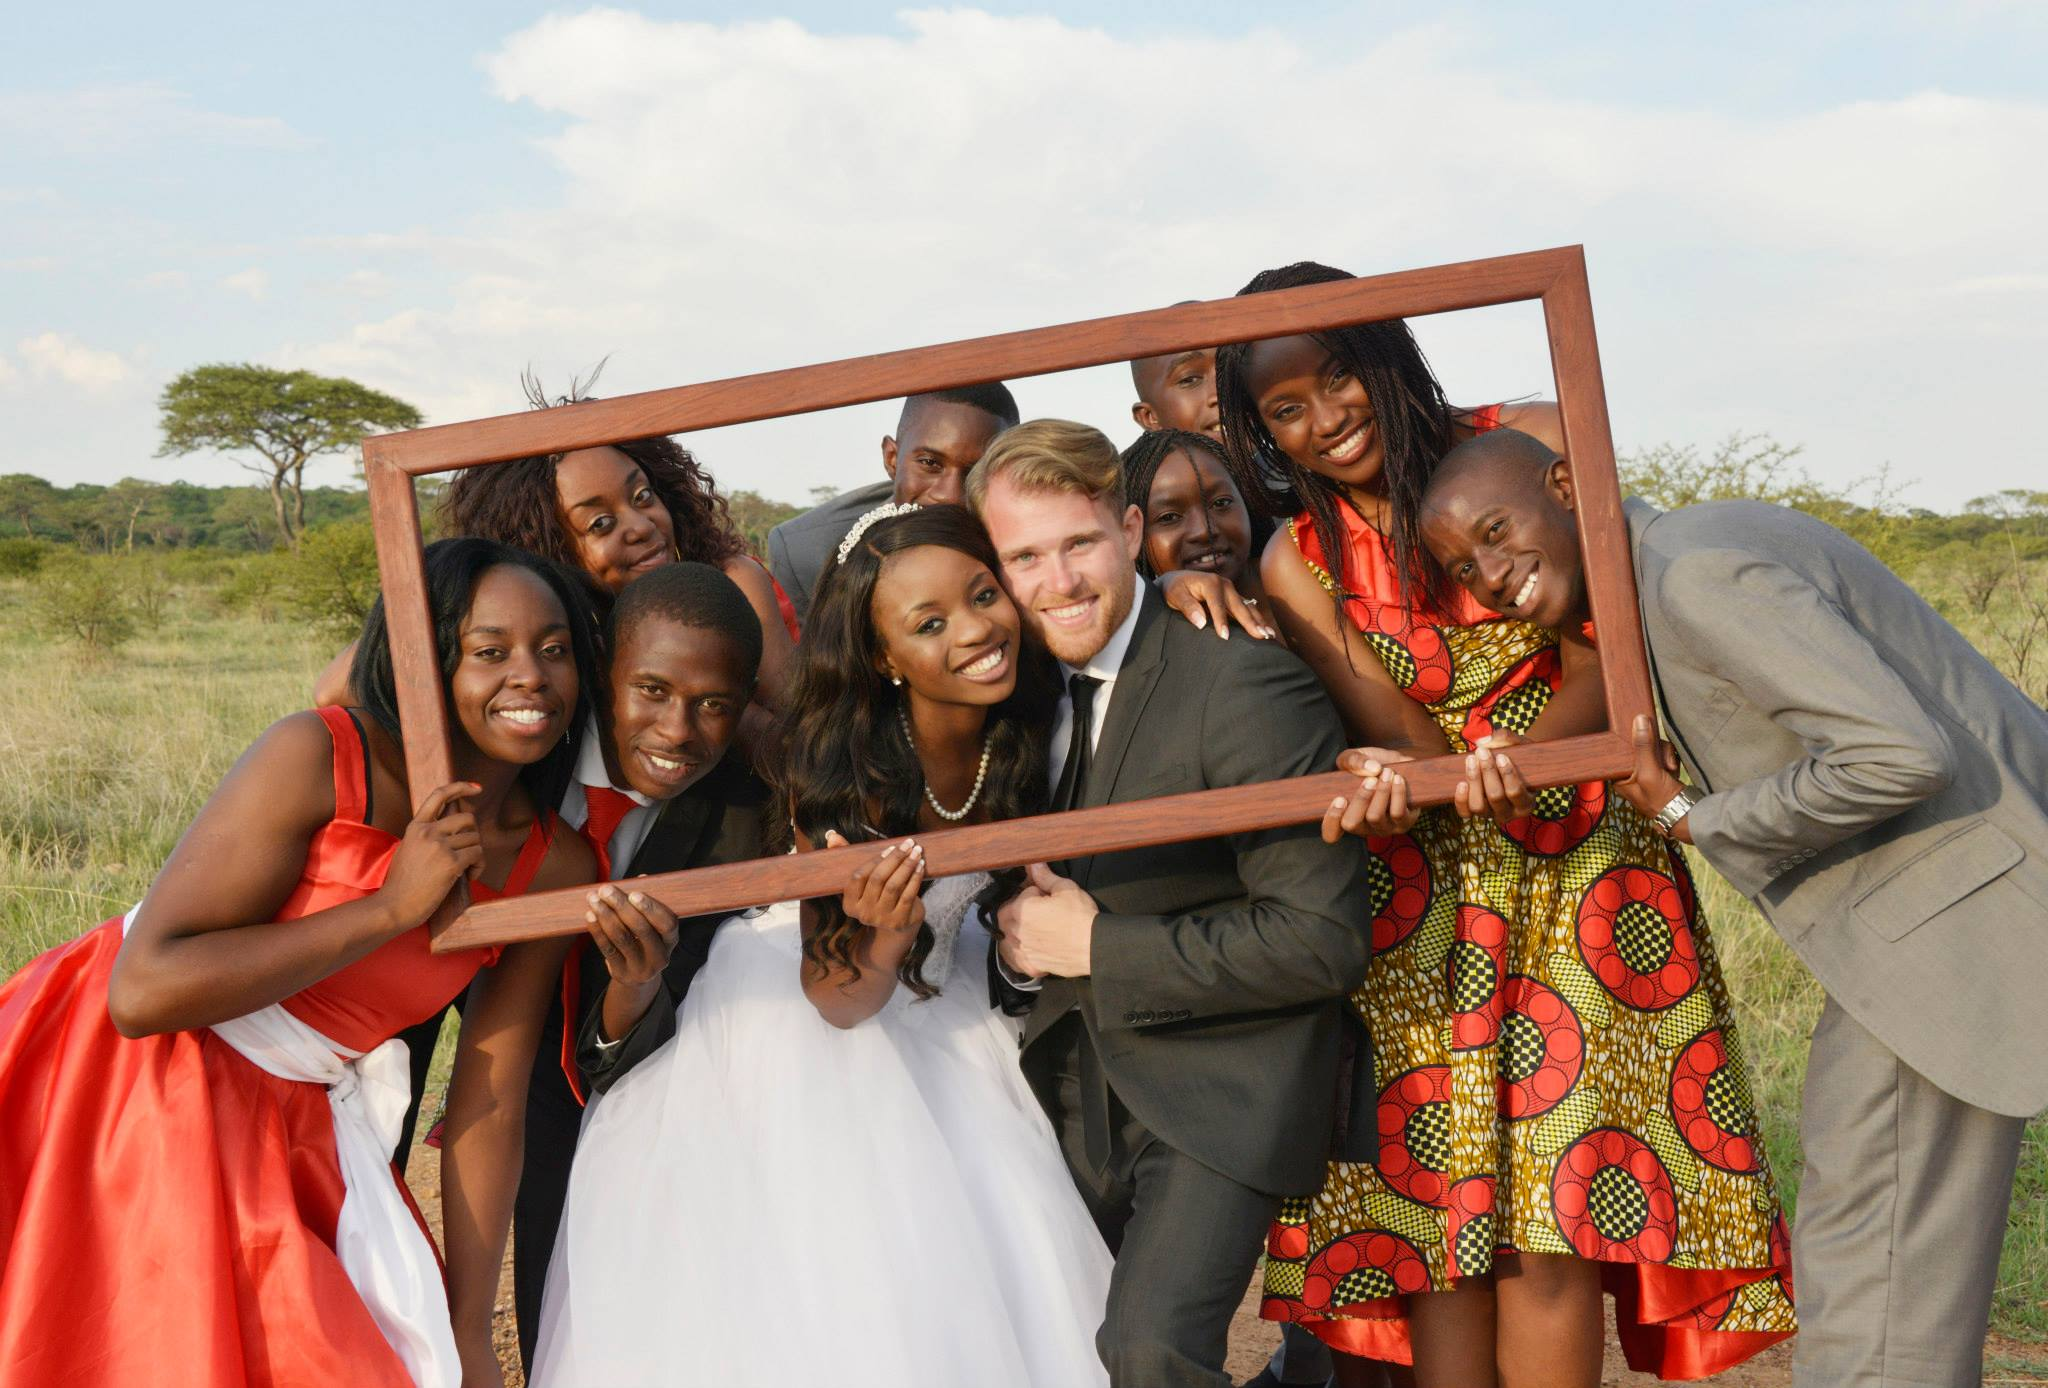 Zimbabwean Wedding 2